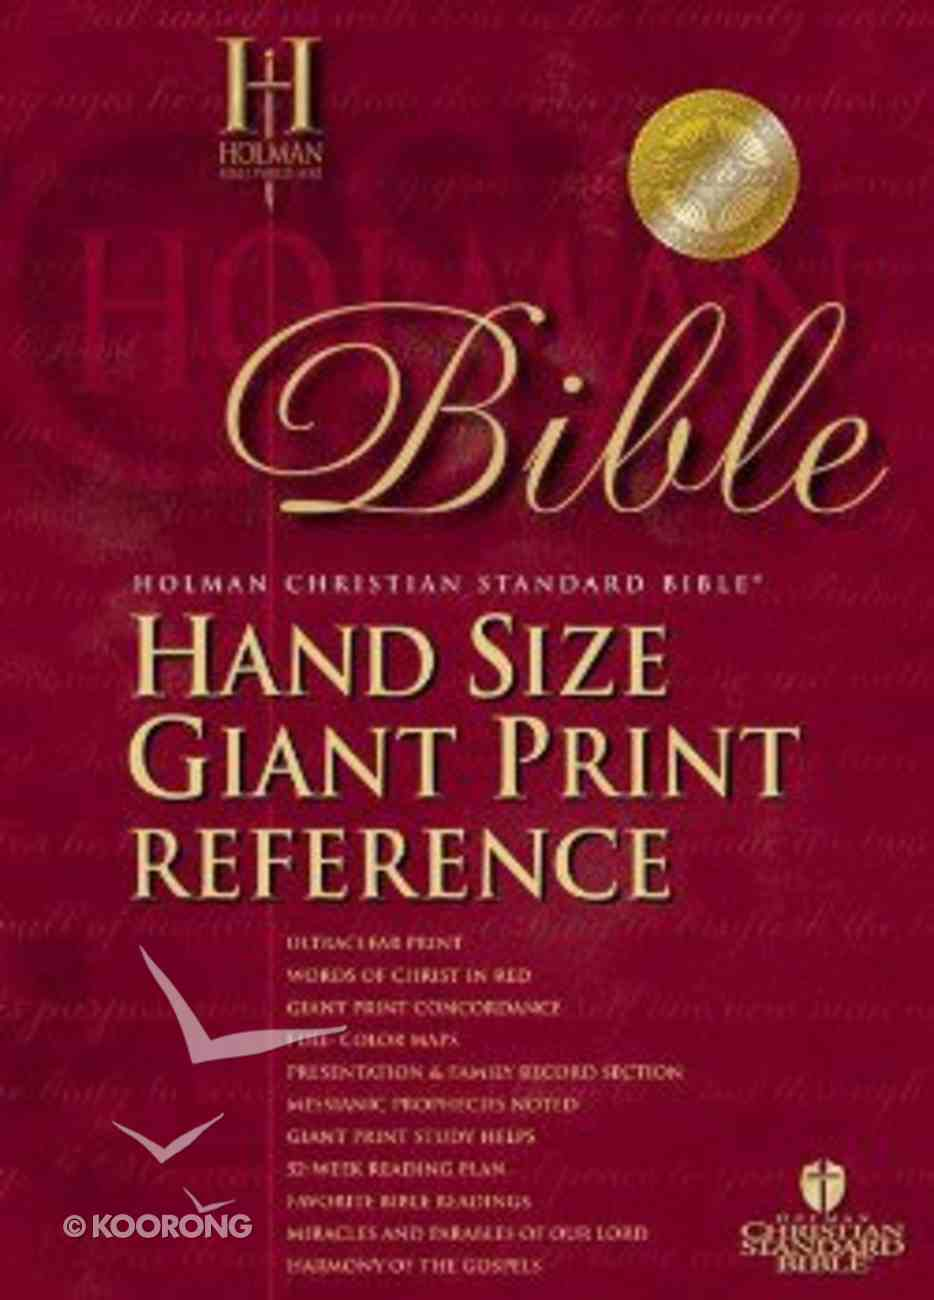 HCSB Hand Size Giant Print Reference Burgundy (Red Letter Edition) Bonded Leather